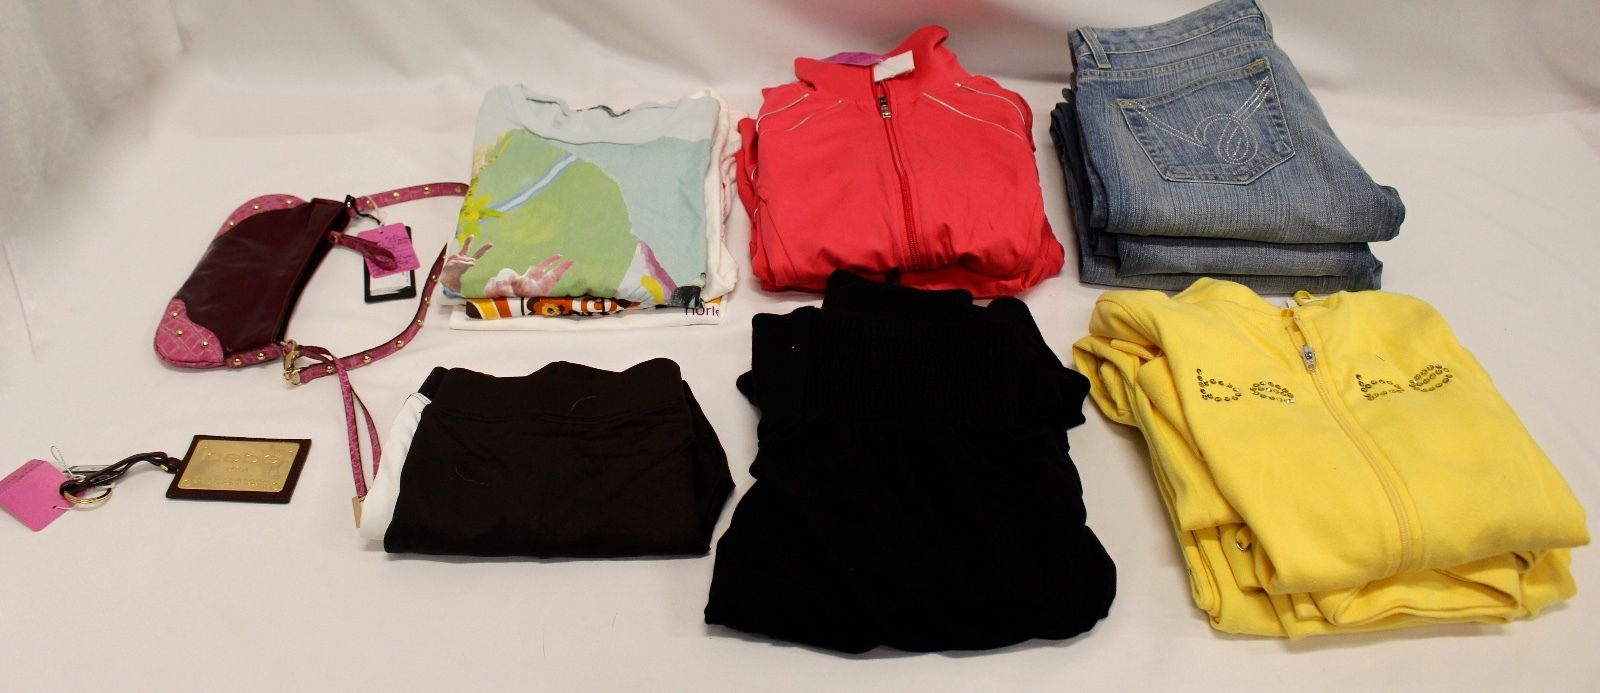 NEW BEBE WOMENS CLOTHING + OTHER ASSORTED ITEMS - FASHION LOT